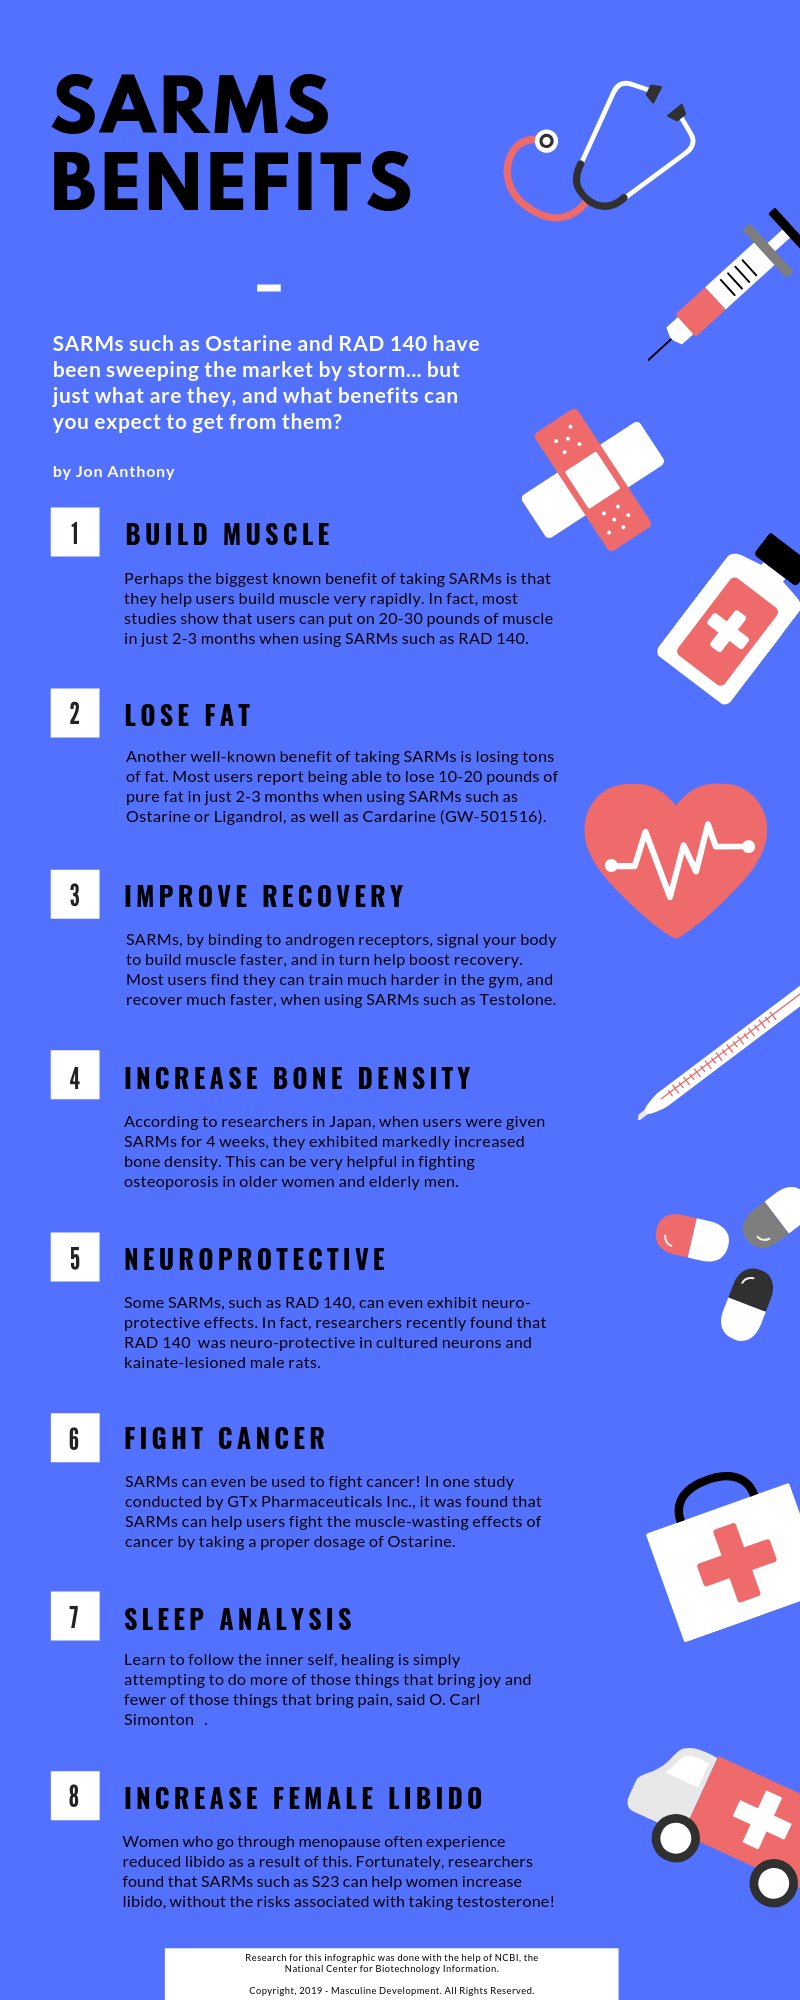 Top 8 Benefits of Taking SARMs | Infographic Portal